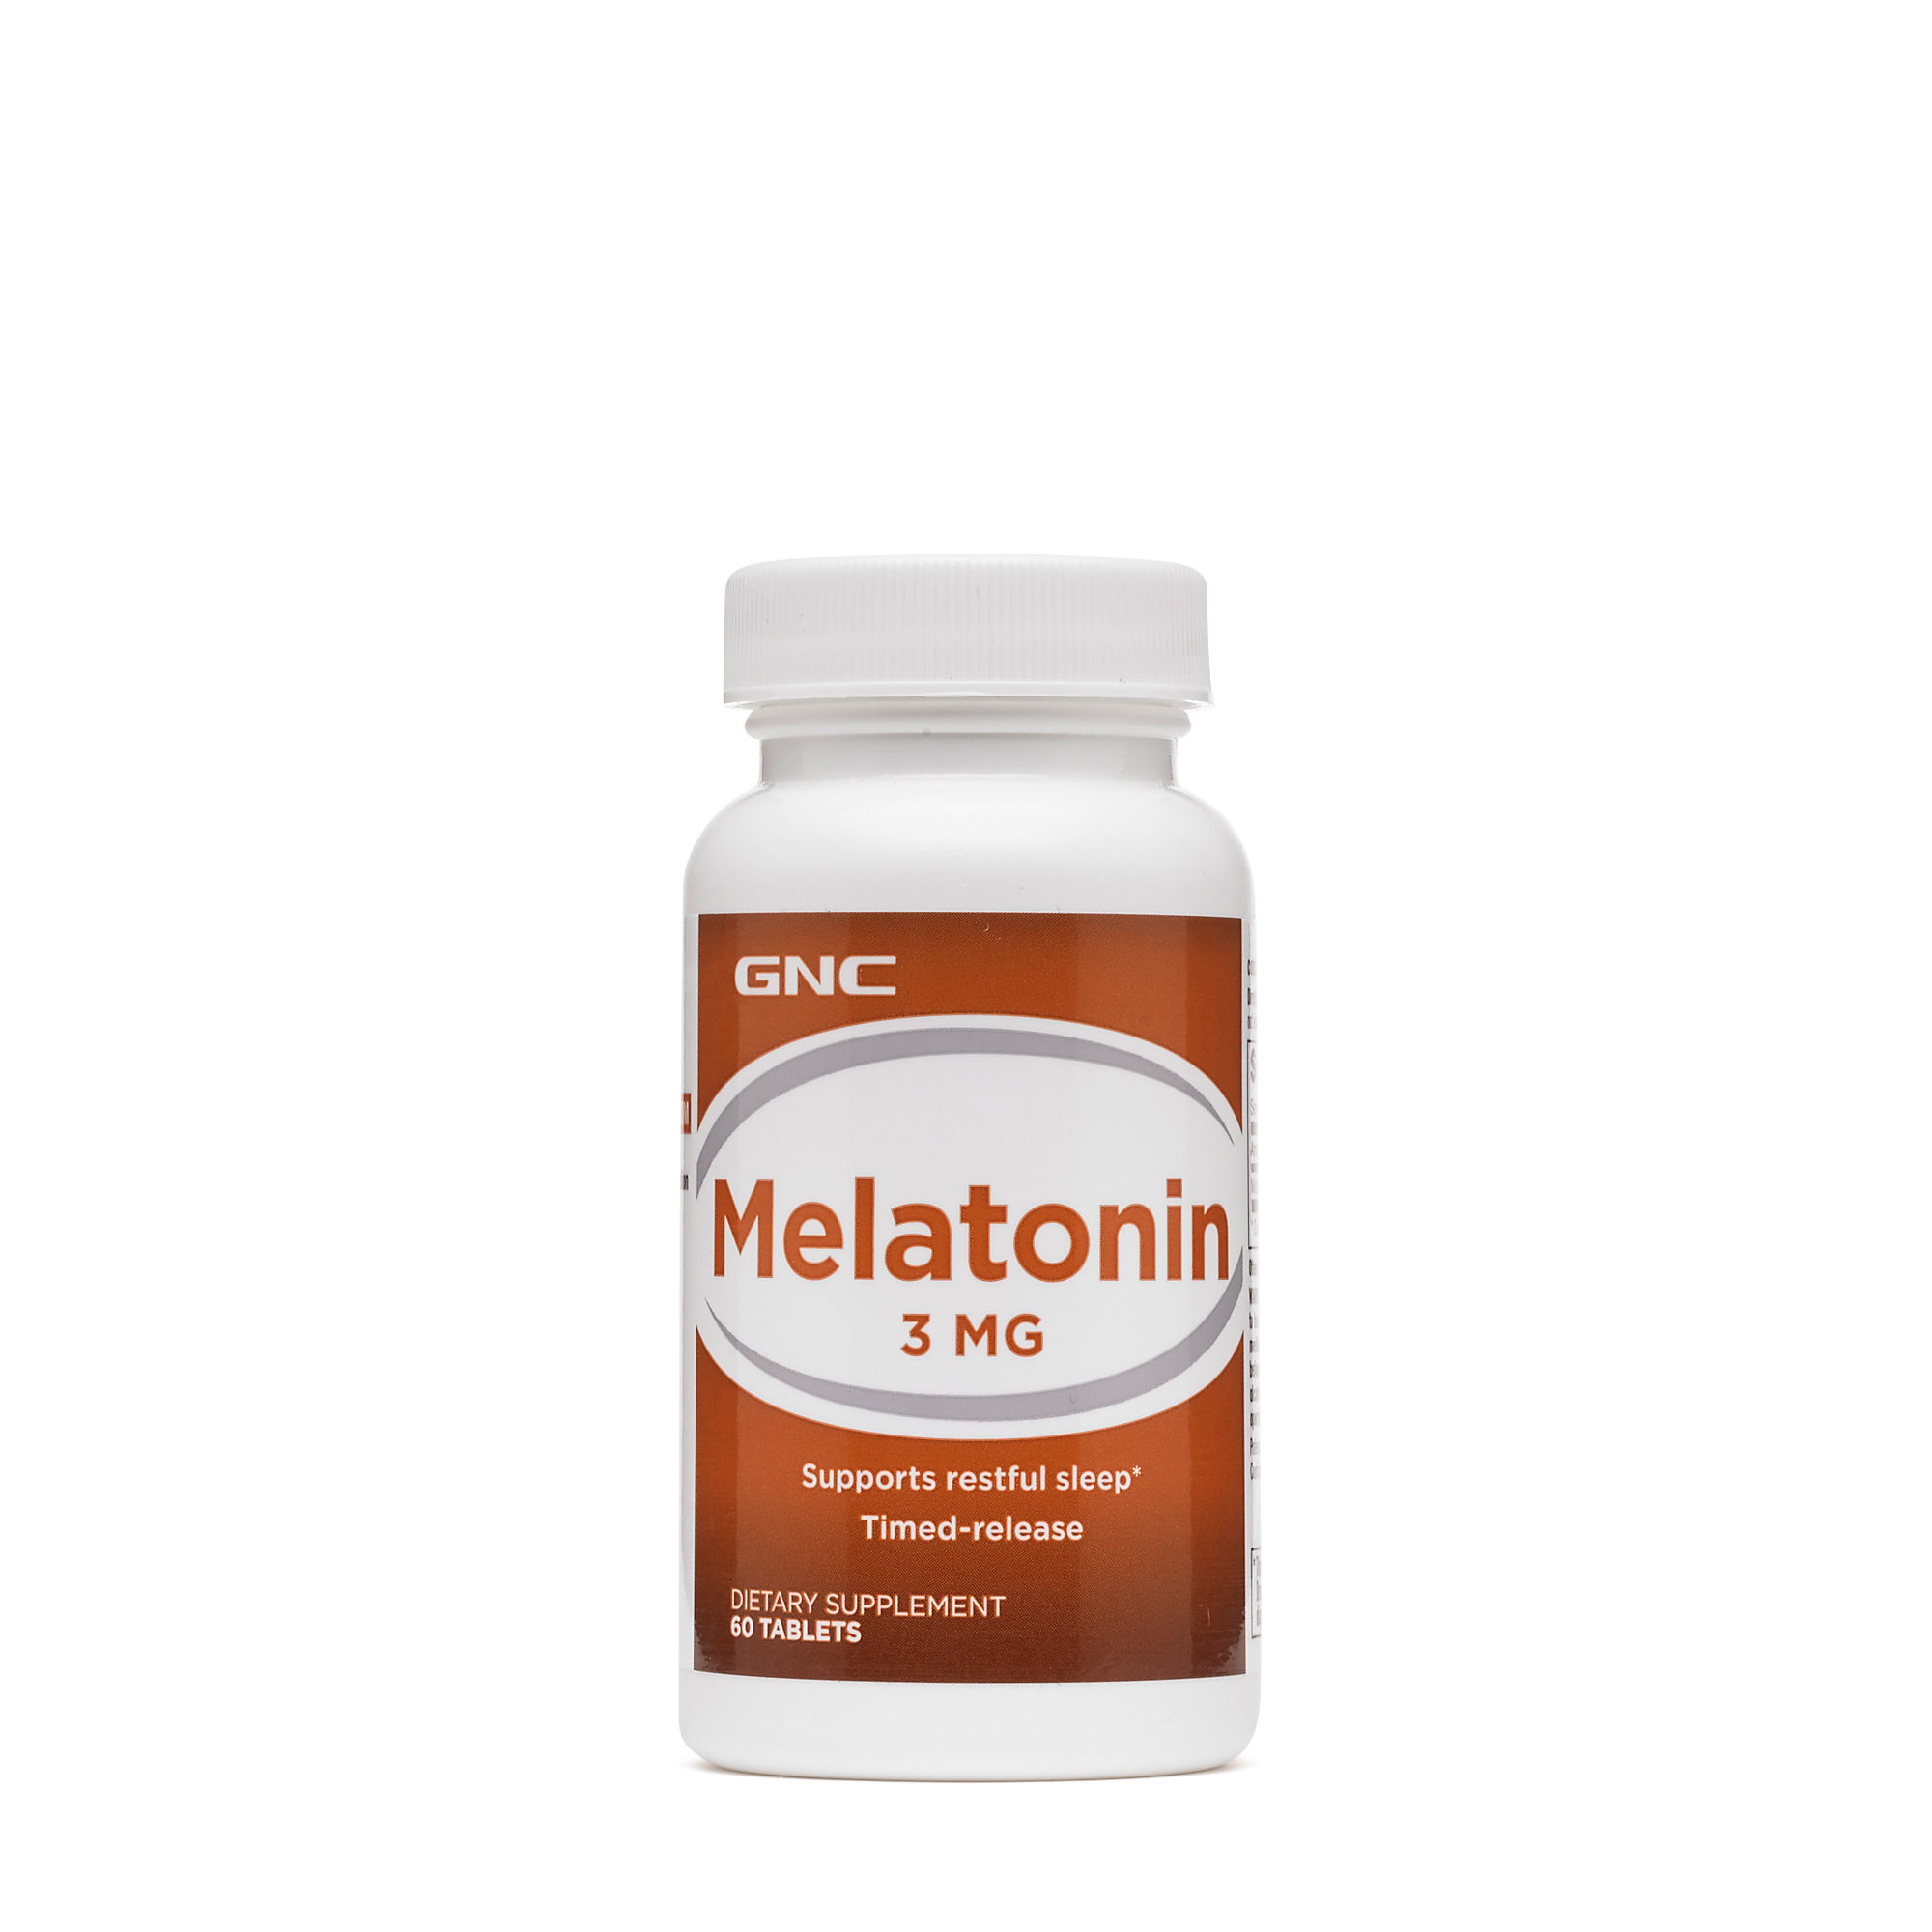 GNC MELATONIN 3 MG+